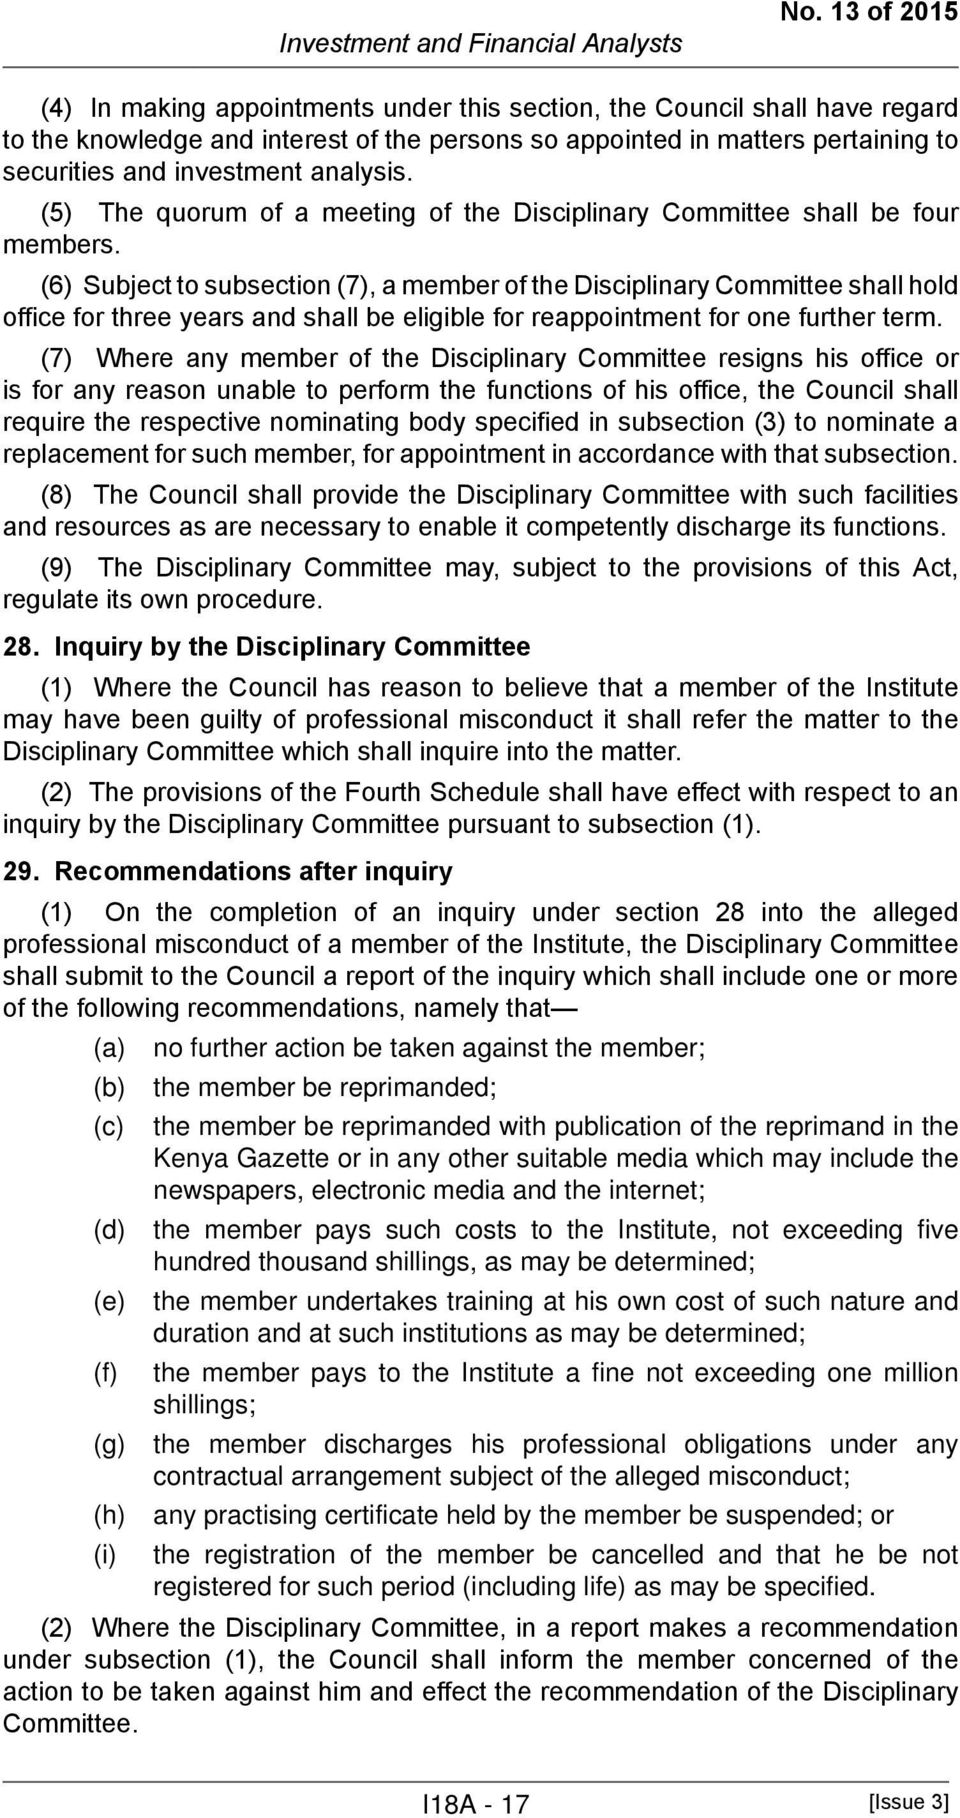 analysis. (5) The quorum of a meeting of the Disciplinary Committee shall be four members.